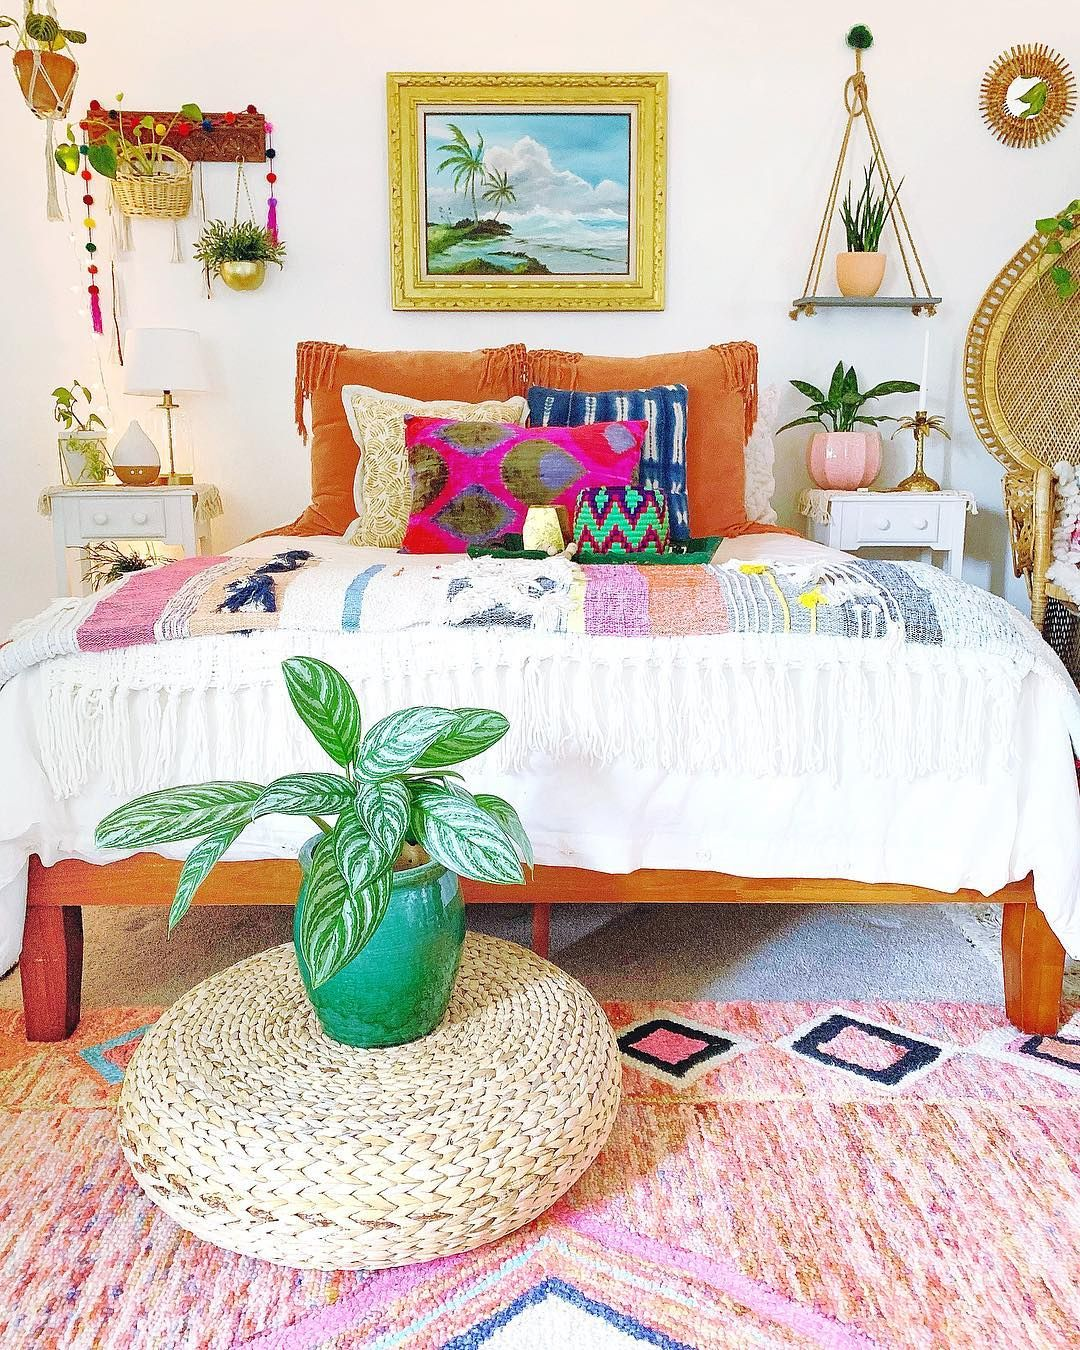 bohemian bedroom decor has become one